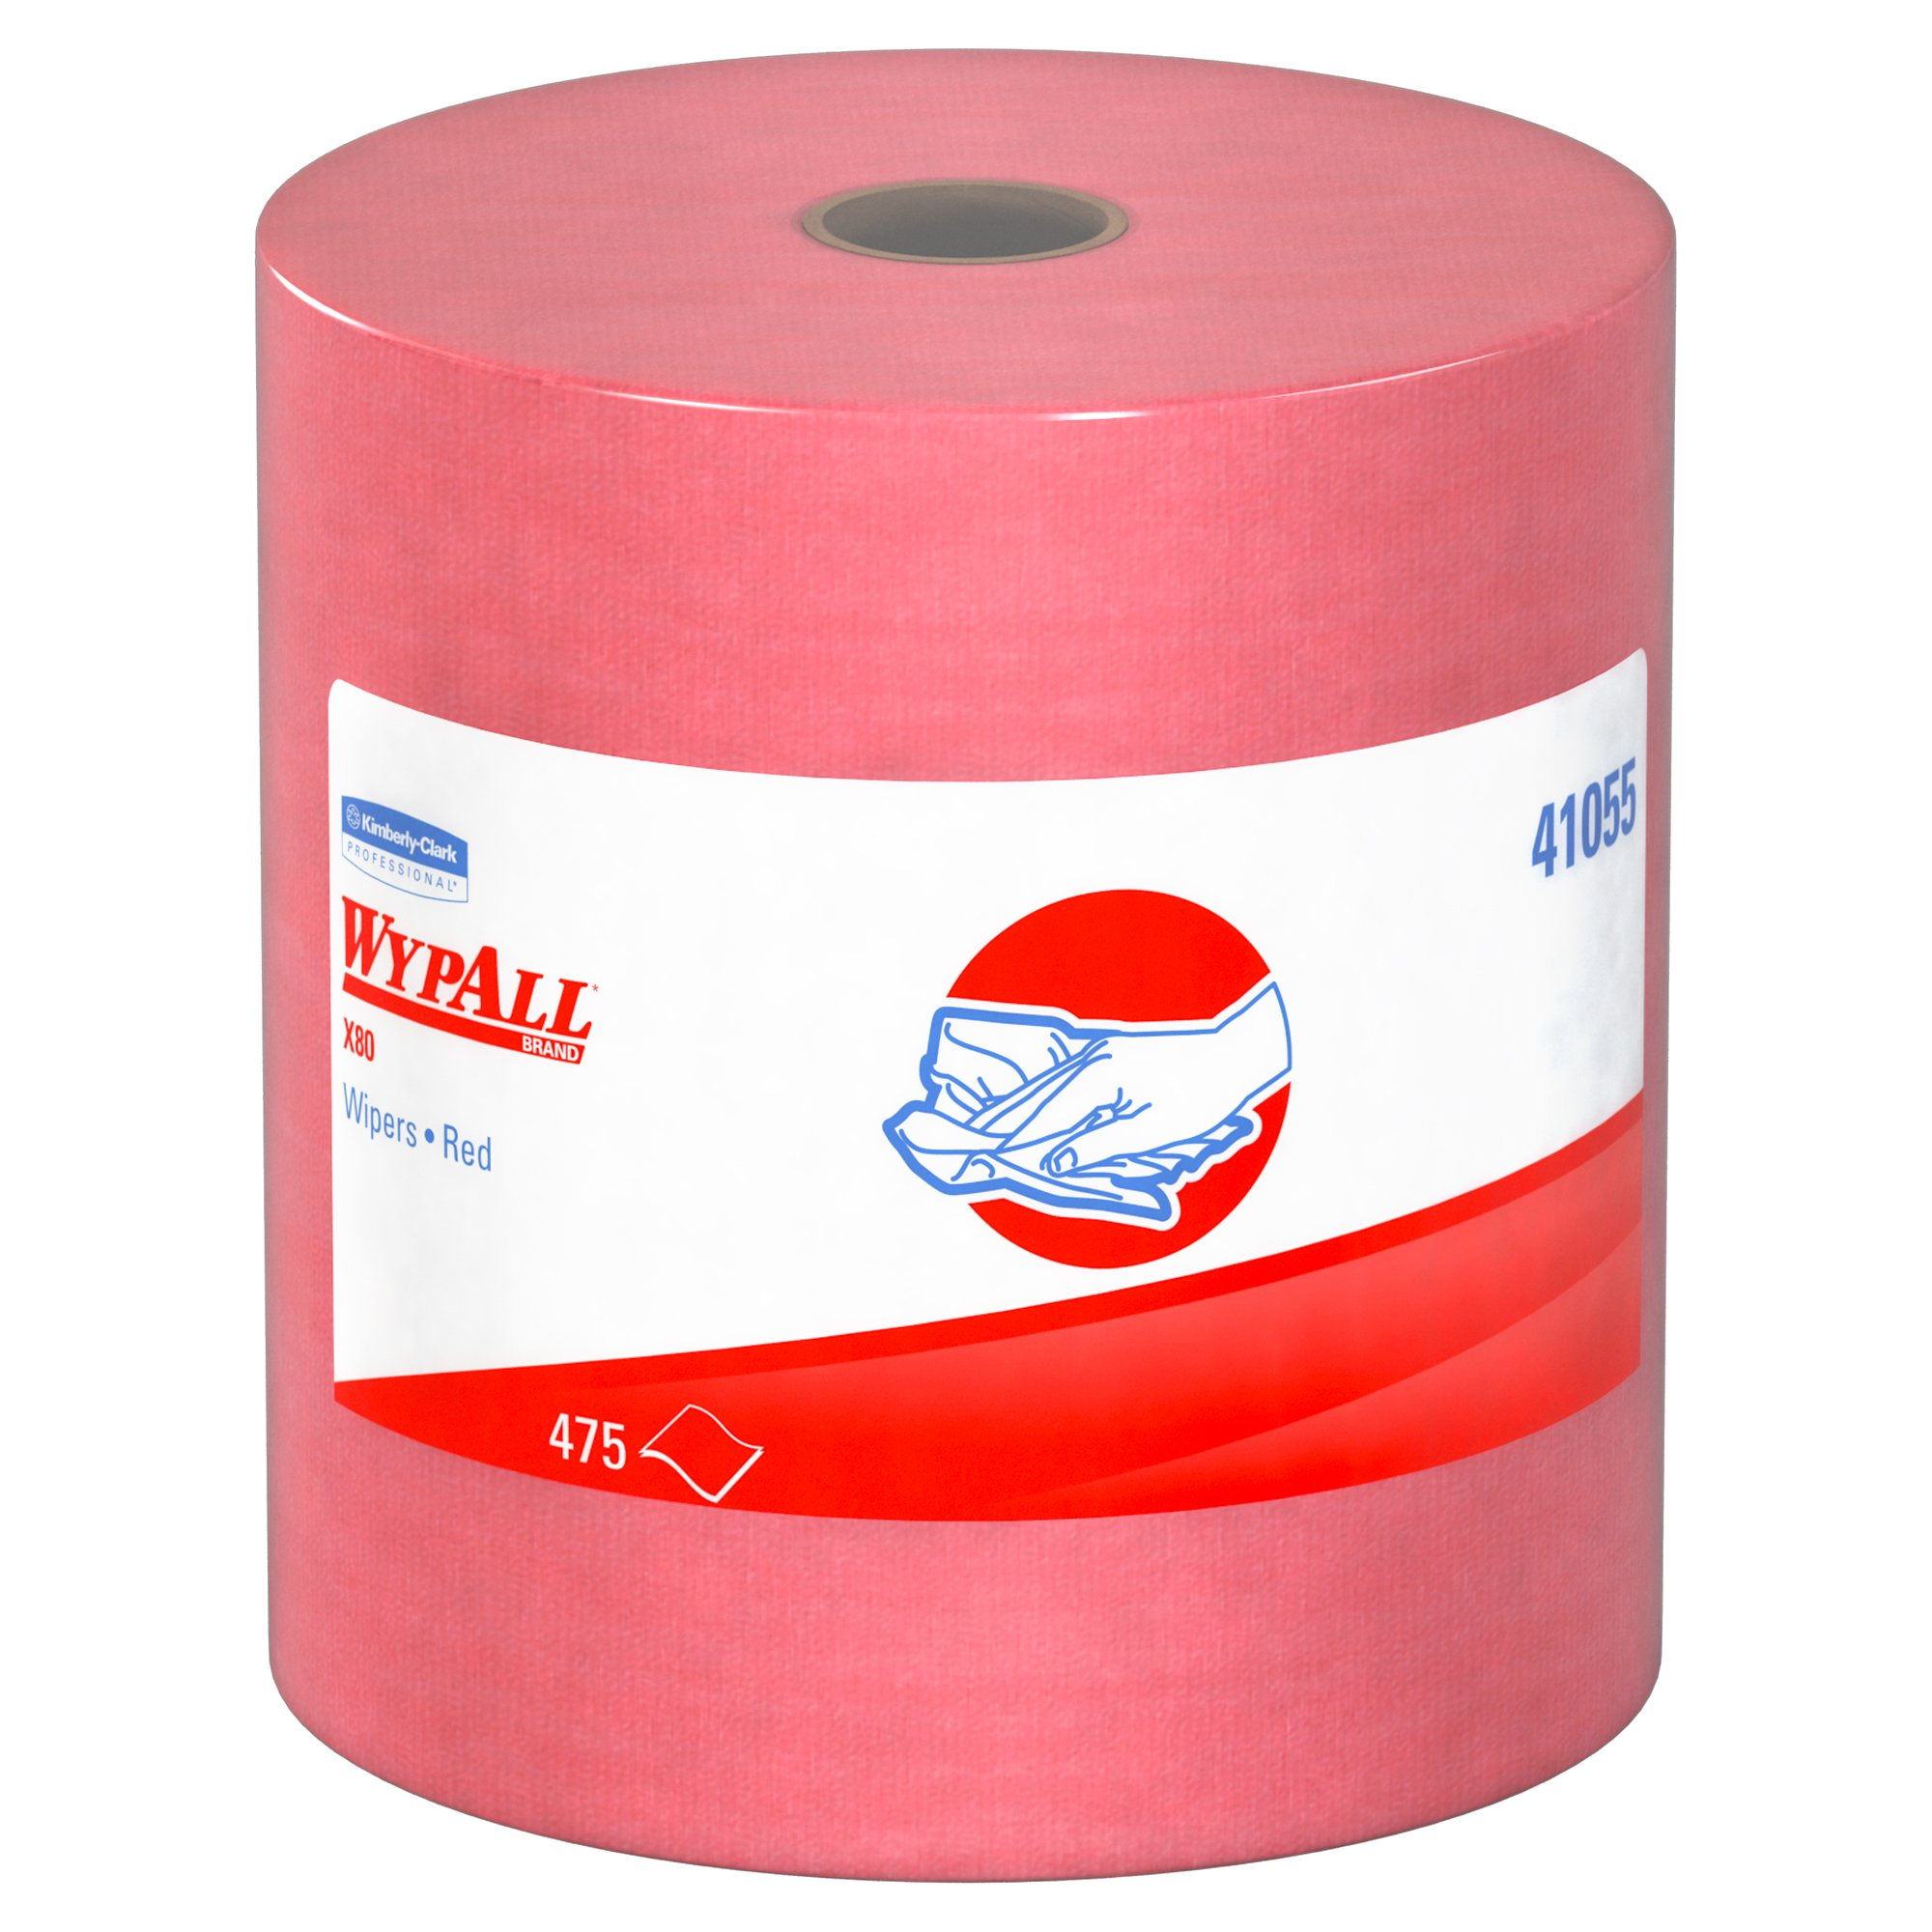 Wypall X80 Reusable Wipes (41055), Extended Use Cloths Jumbo Roll, Red, 475 Sheets/Roll; 1 Roll/Case